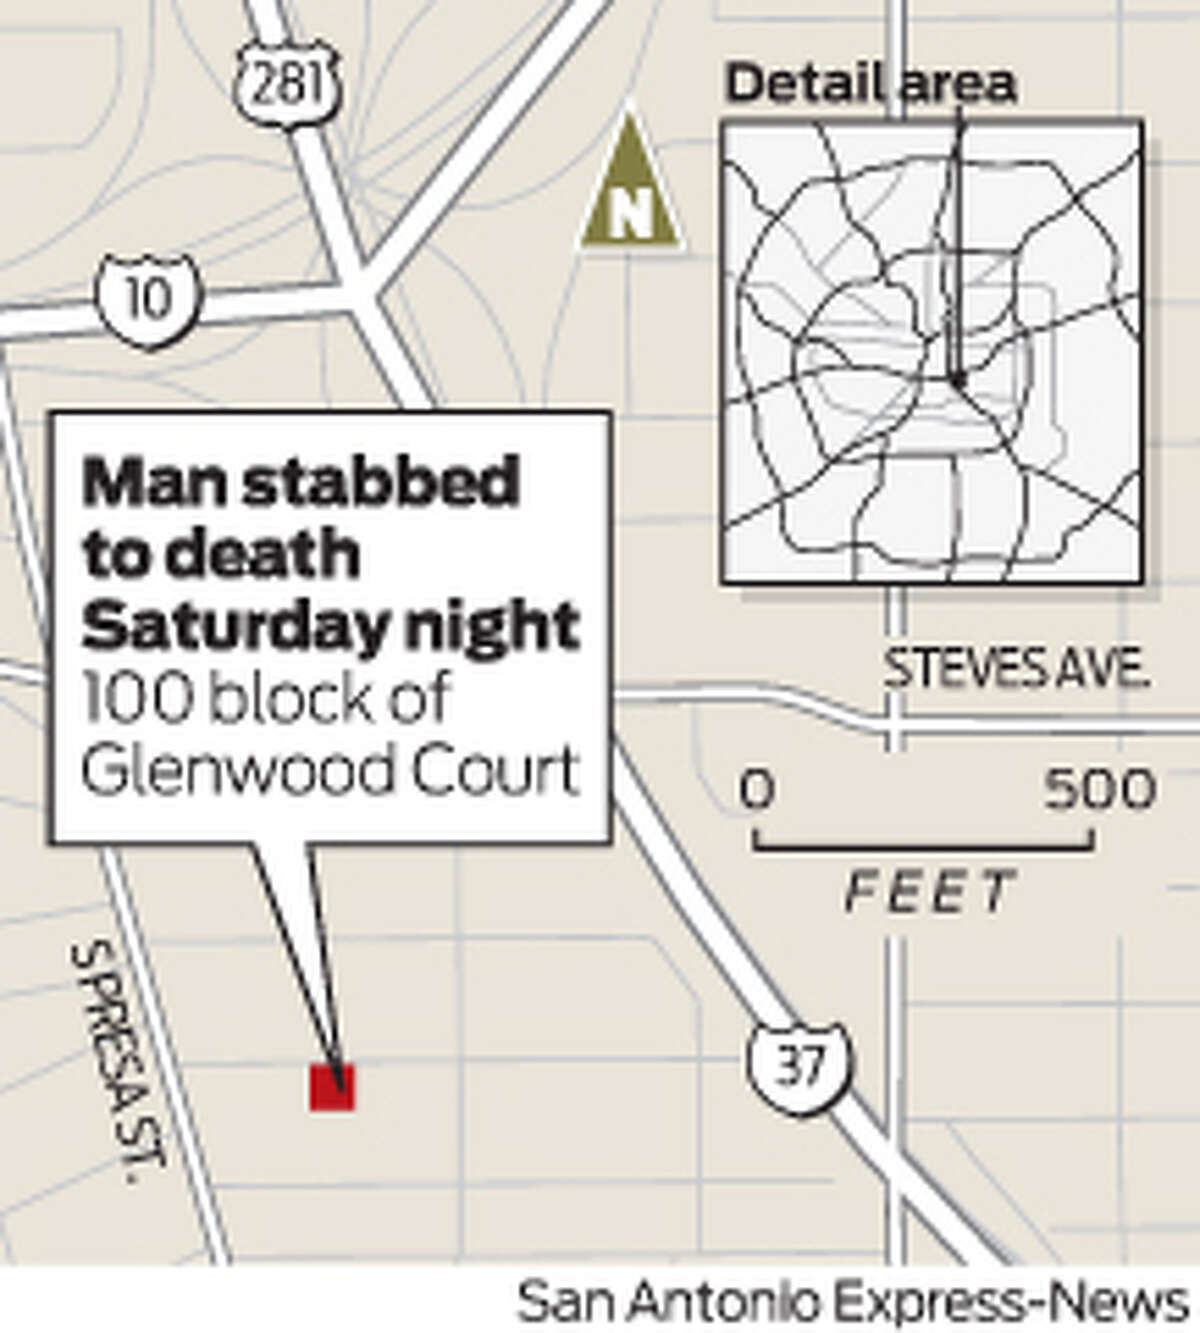 Man stabbed to death Saturday night 100 block of Glenwood Court